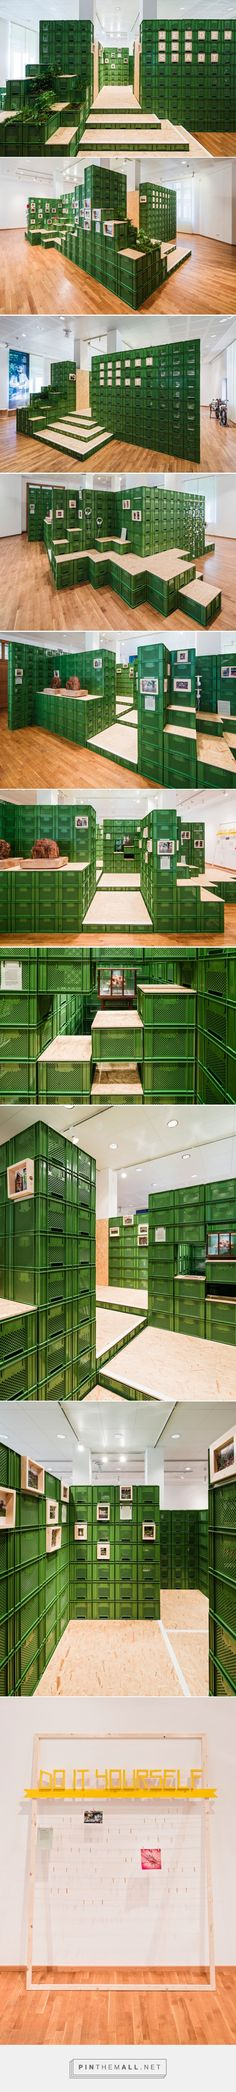 yalla yalla! stacks vegetable crates for exhibition in germany - created via http://pinthemall.net